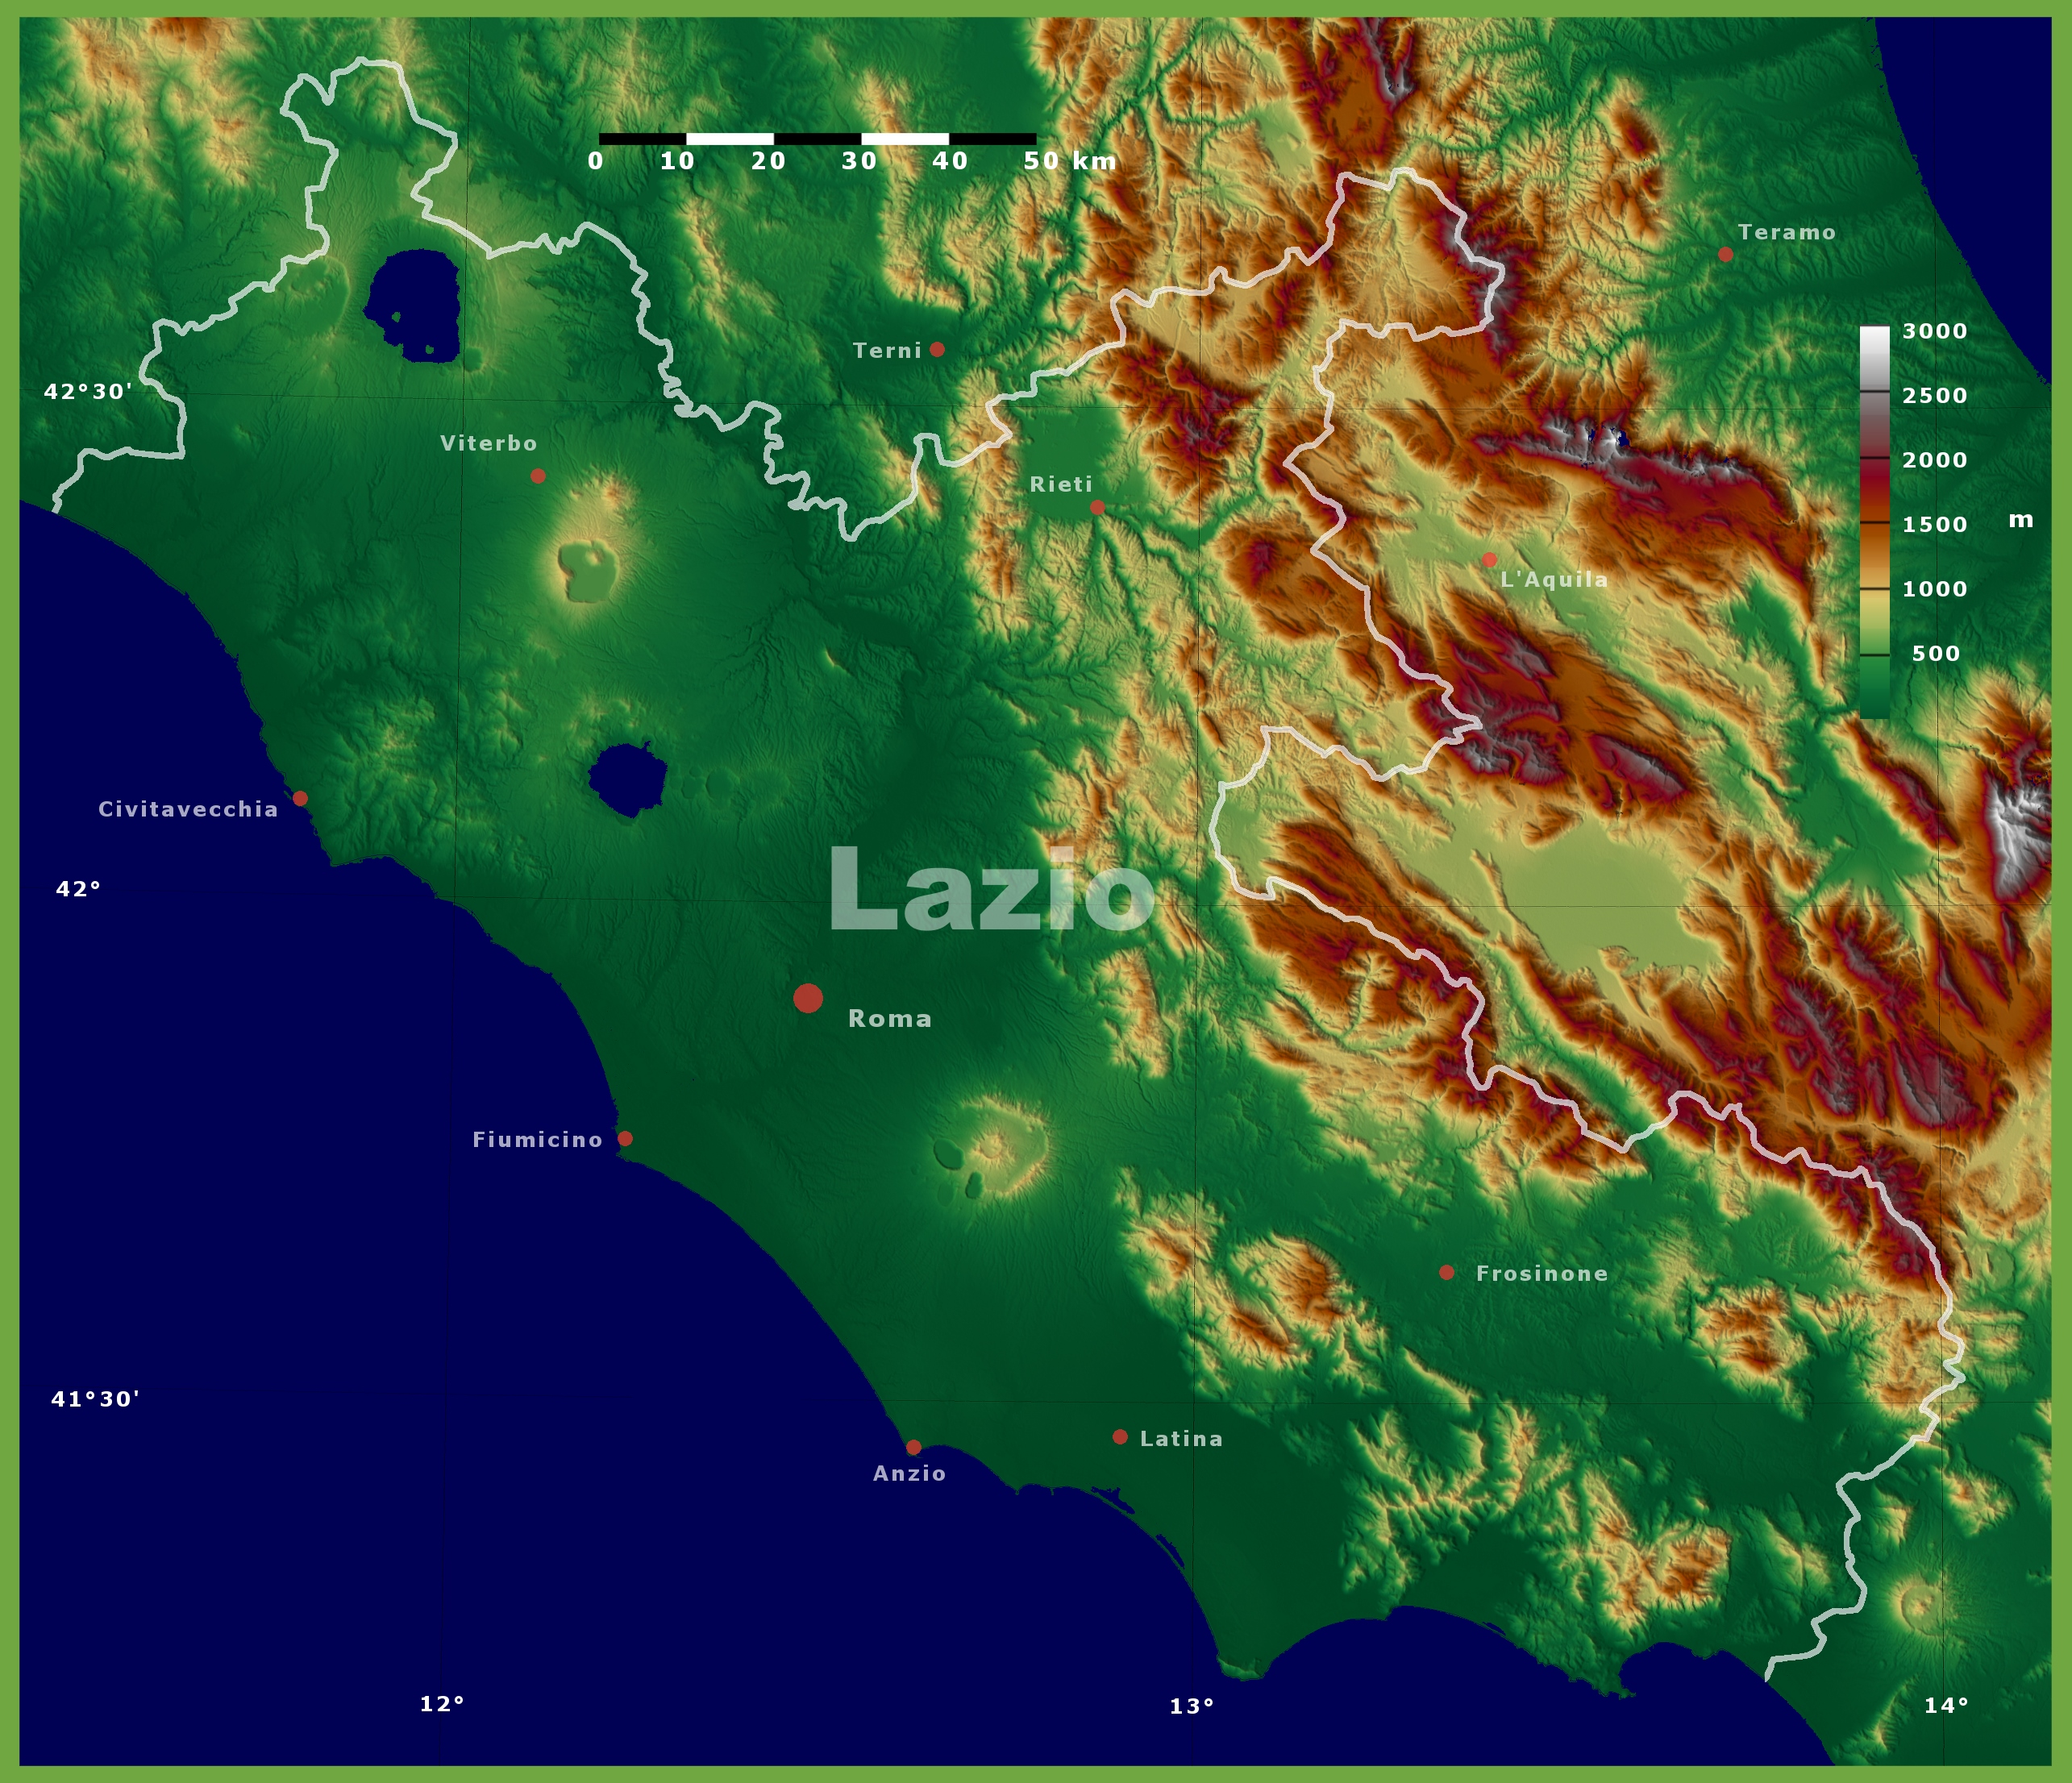 Map Of Lazio Region Italy on Italy Physical Map